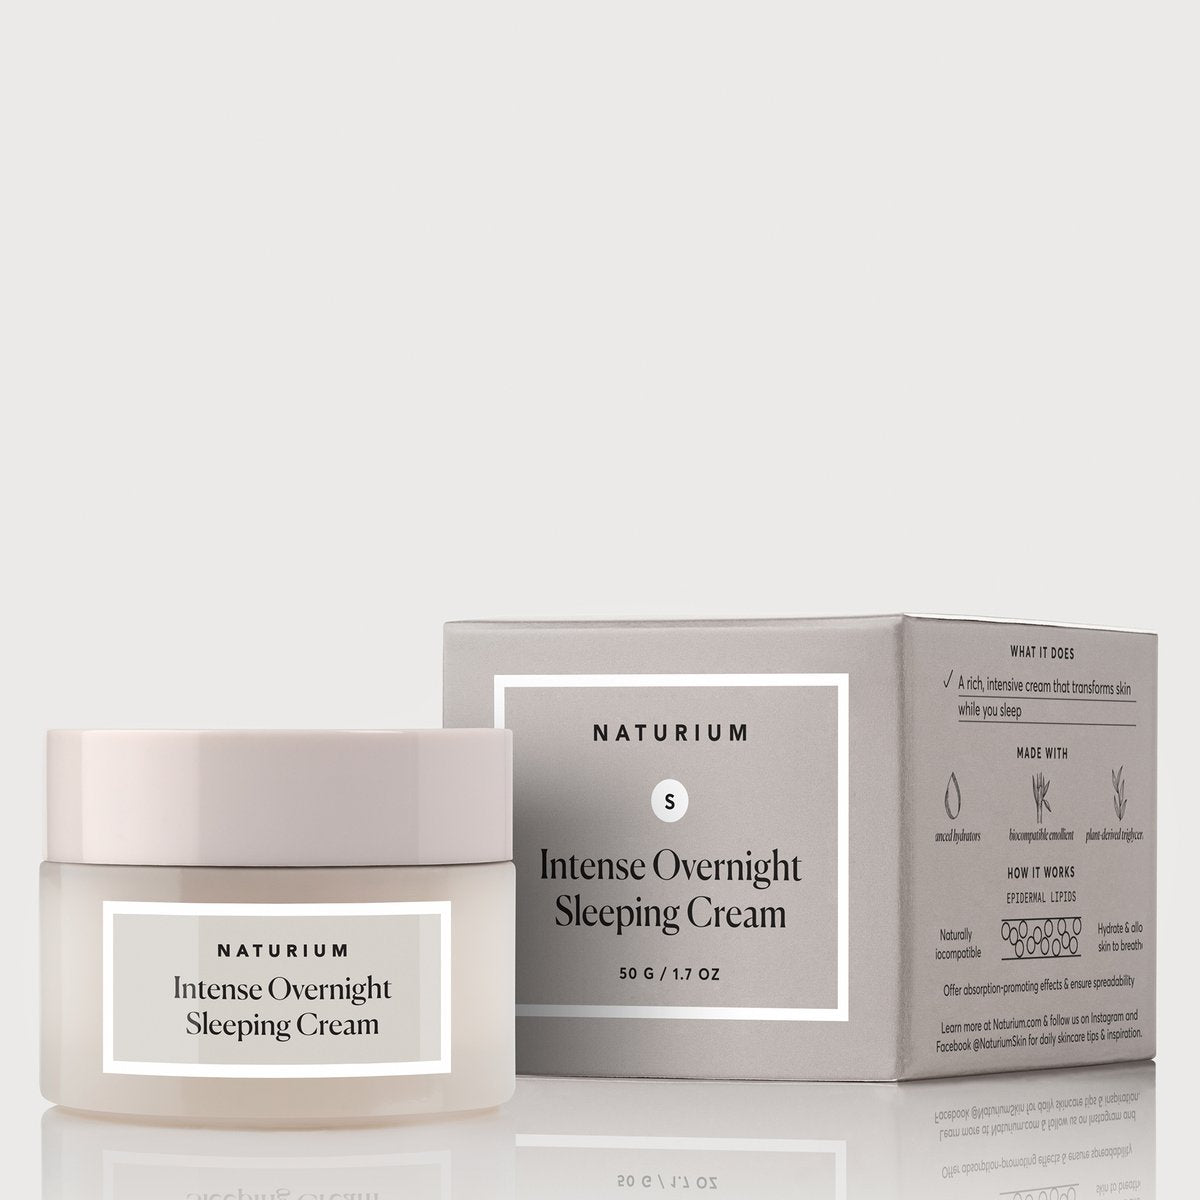 Naturium Intense Overnight Sleeping Cream. Worldwide Shipping - Singapore, Malaysia, Brunei, Philippines, Indonesia, India, Australia, Hong Kong, USA, Europe!